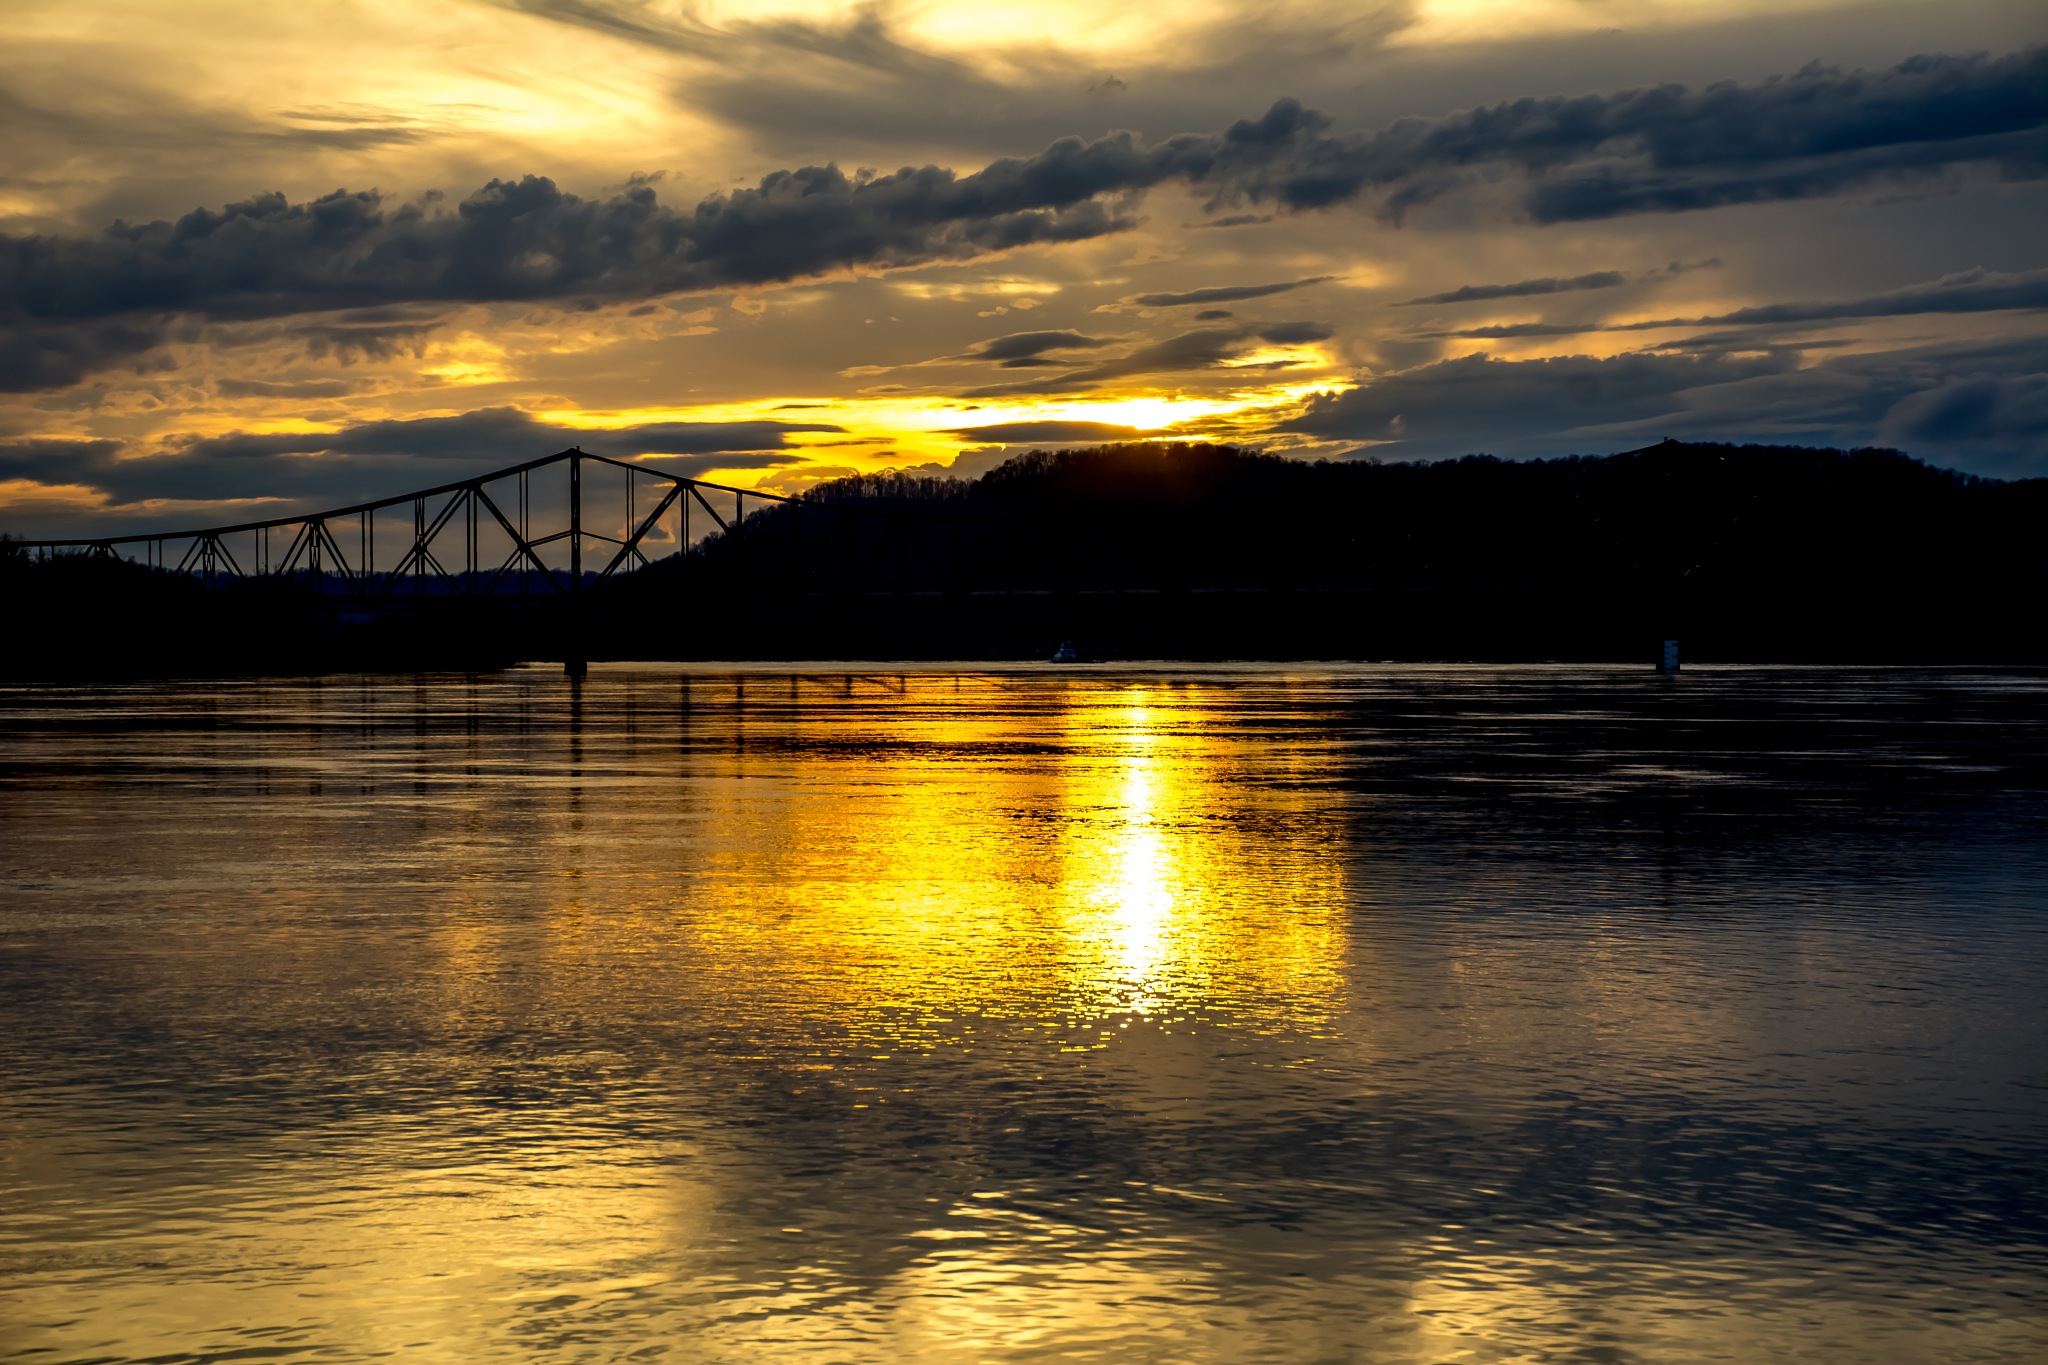 sunset over the Ohio river1 by Zach Henderson